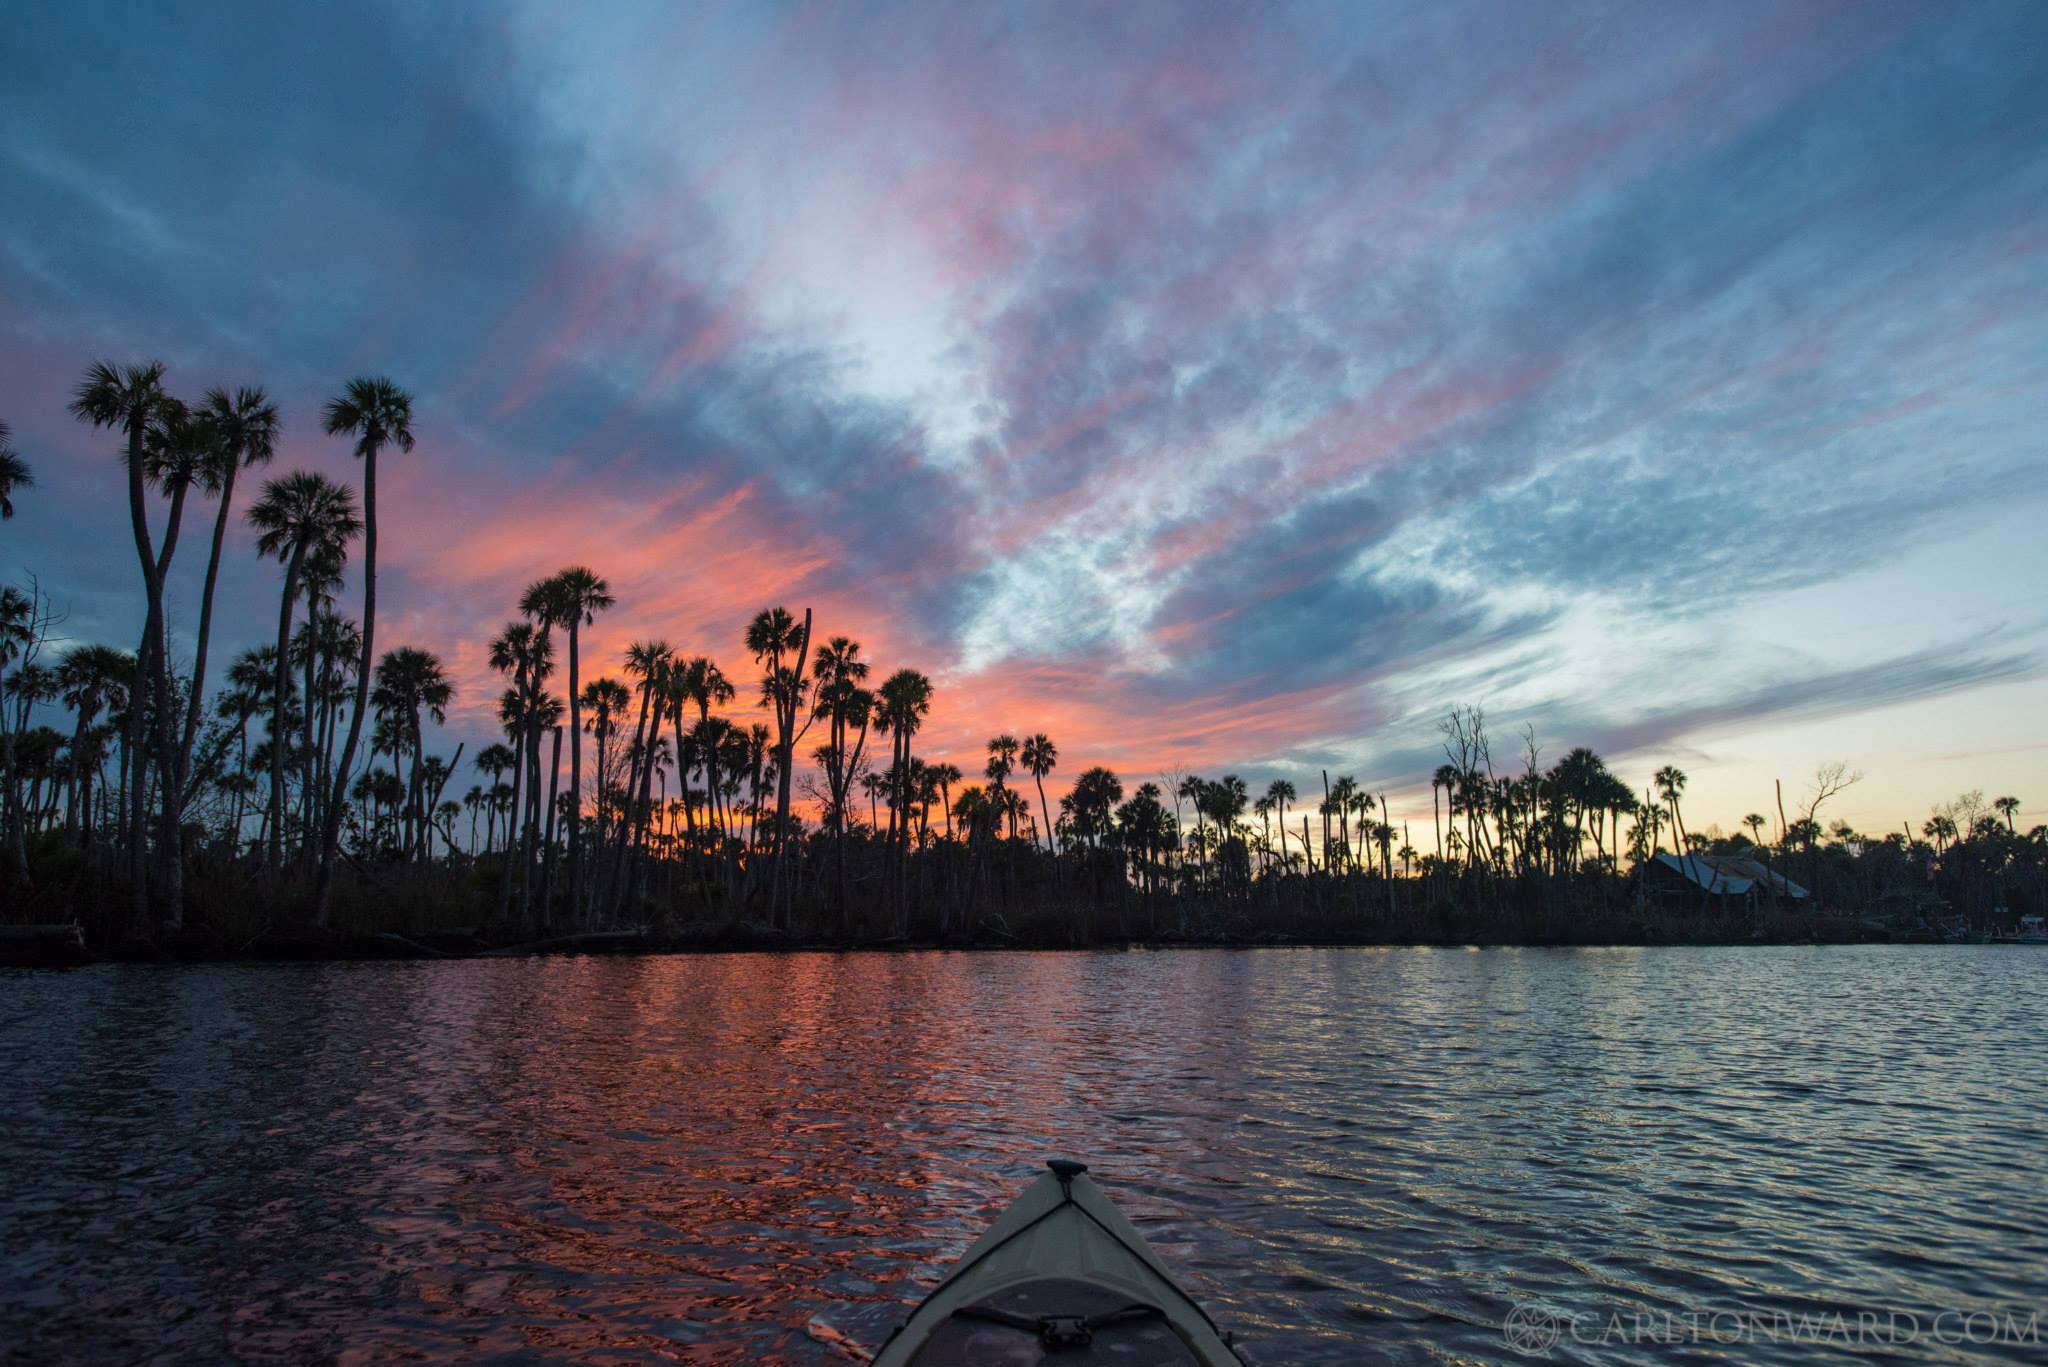 Photo: Carlton Ward Colors explode over the palms during a beautiful evening on the Chassahowitzka River.